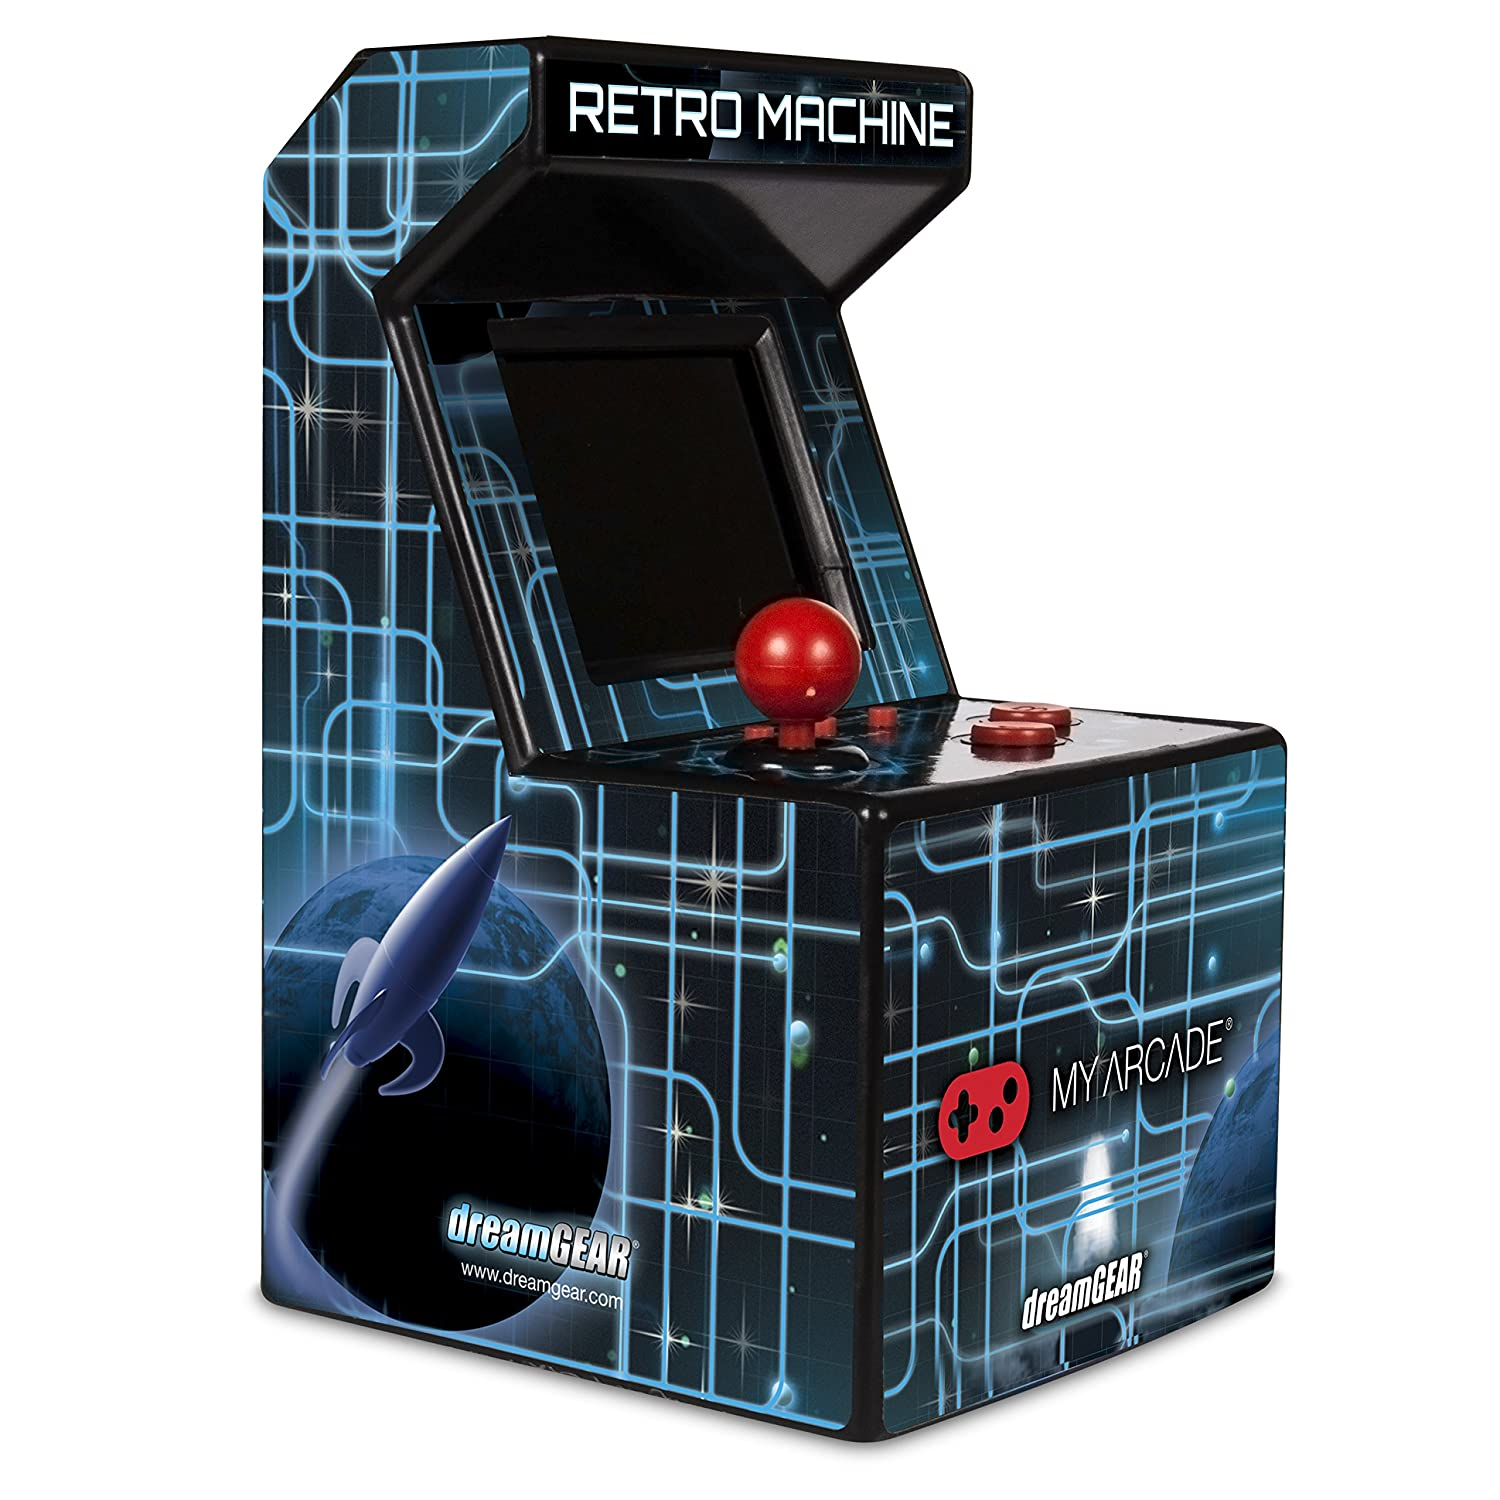 My Arcade Retro Arcade Machine with 200 Built-in Video Games